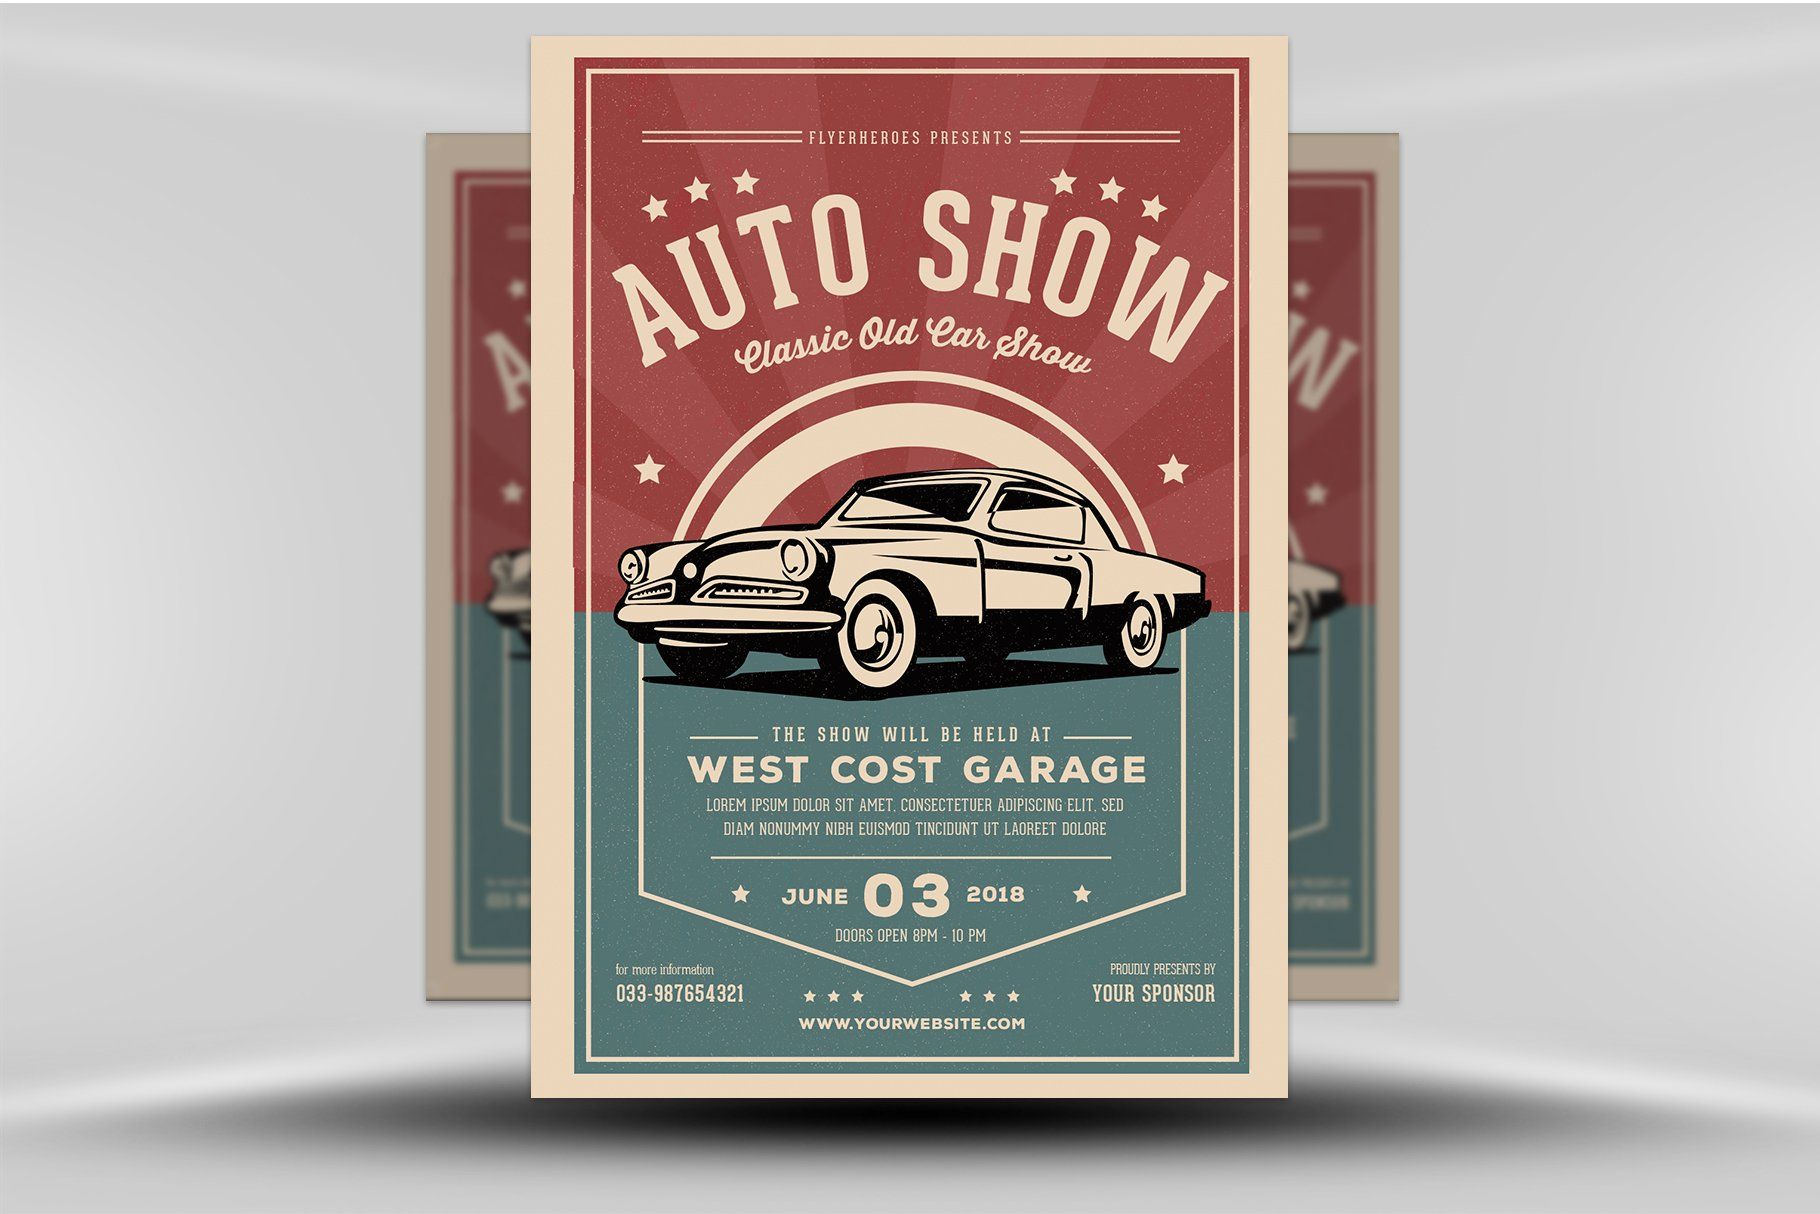 Old Classic Car Show Flyer Template Car#Show#Classic #affiliate